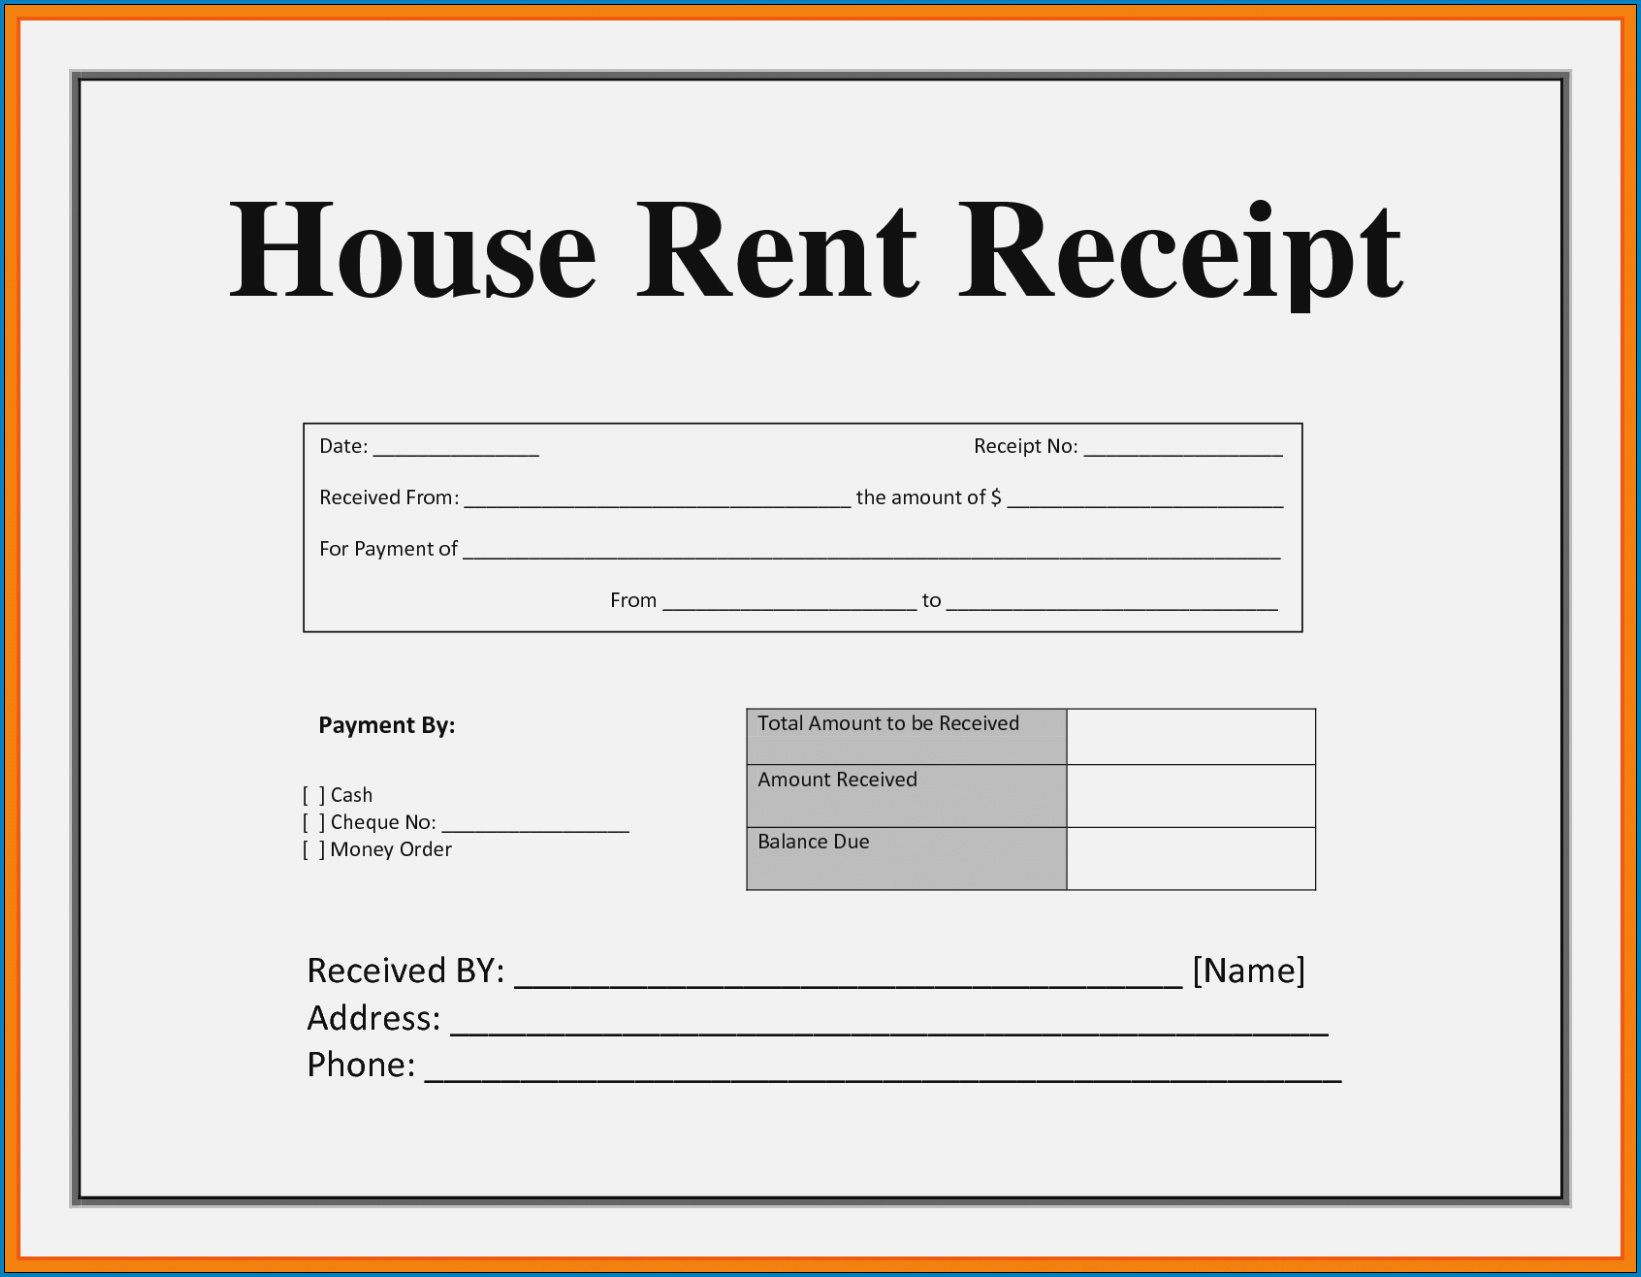 003 Striking House Rent Receipt Sample Doc Inspiration  Template India Bill Format Word Document Pdf DownloadFull